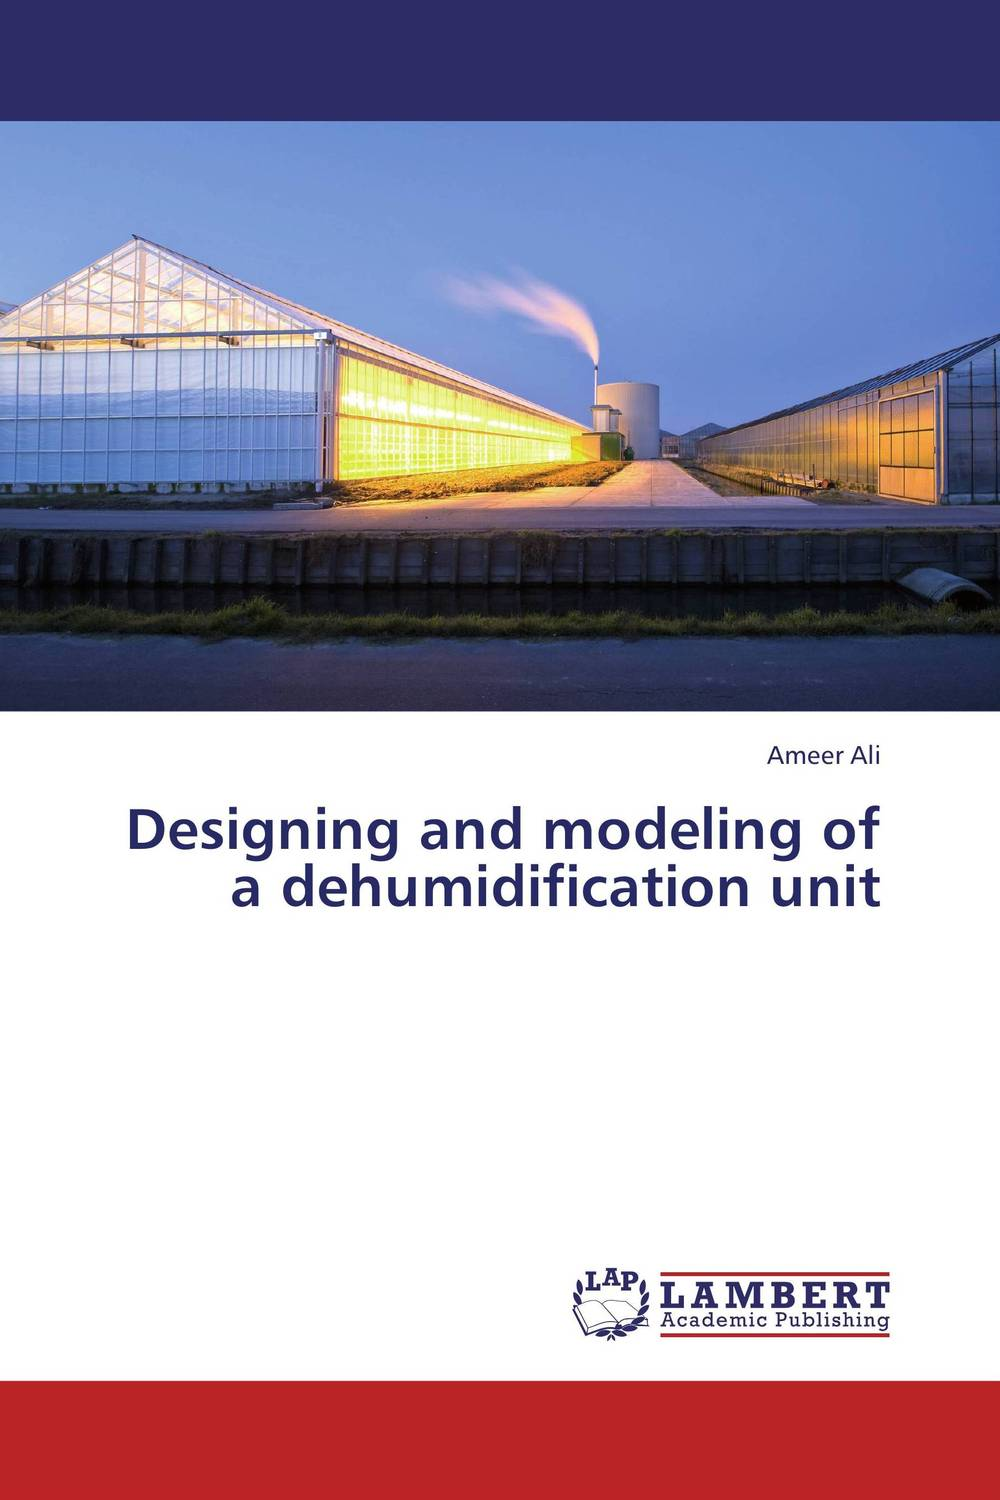 Designing and modeling of a dehumidification unit